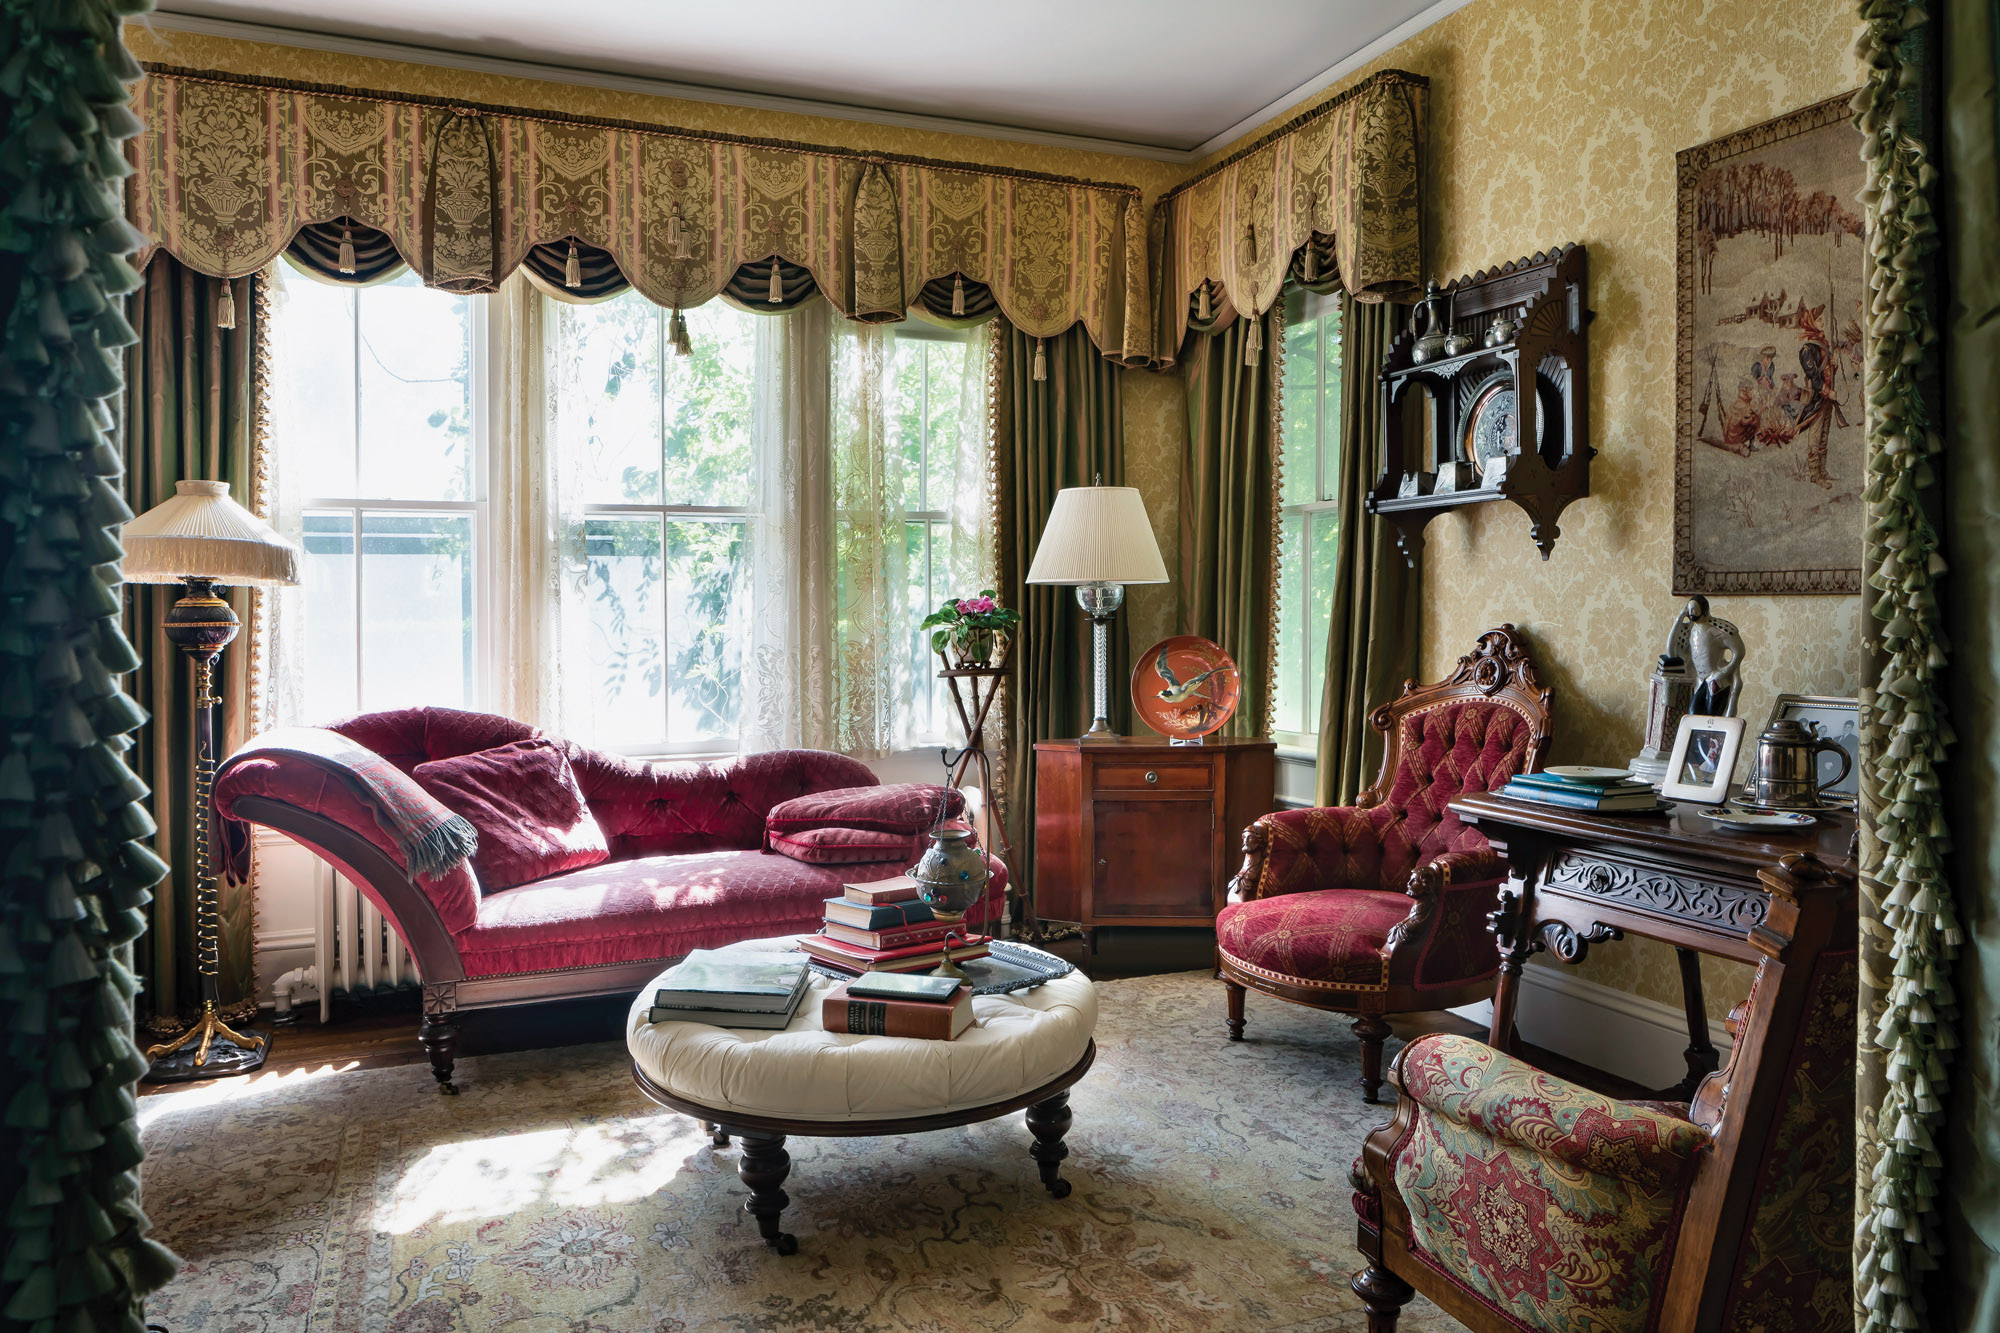 Each room in the house is decorated and furnished in a different style of the decadeslong Victorian period. The library has the eclecticism of the 1890s, blending historical styles from Rococo to the return of American Empire.